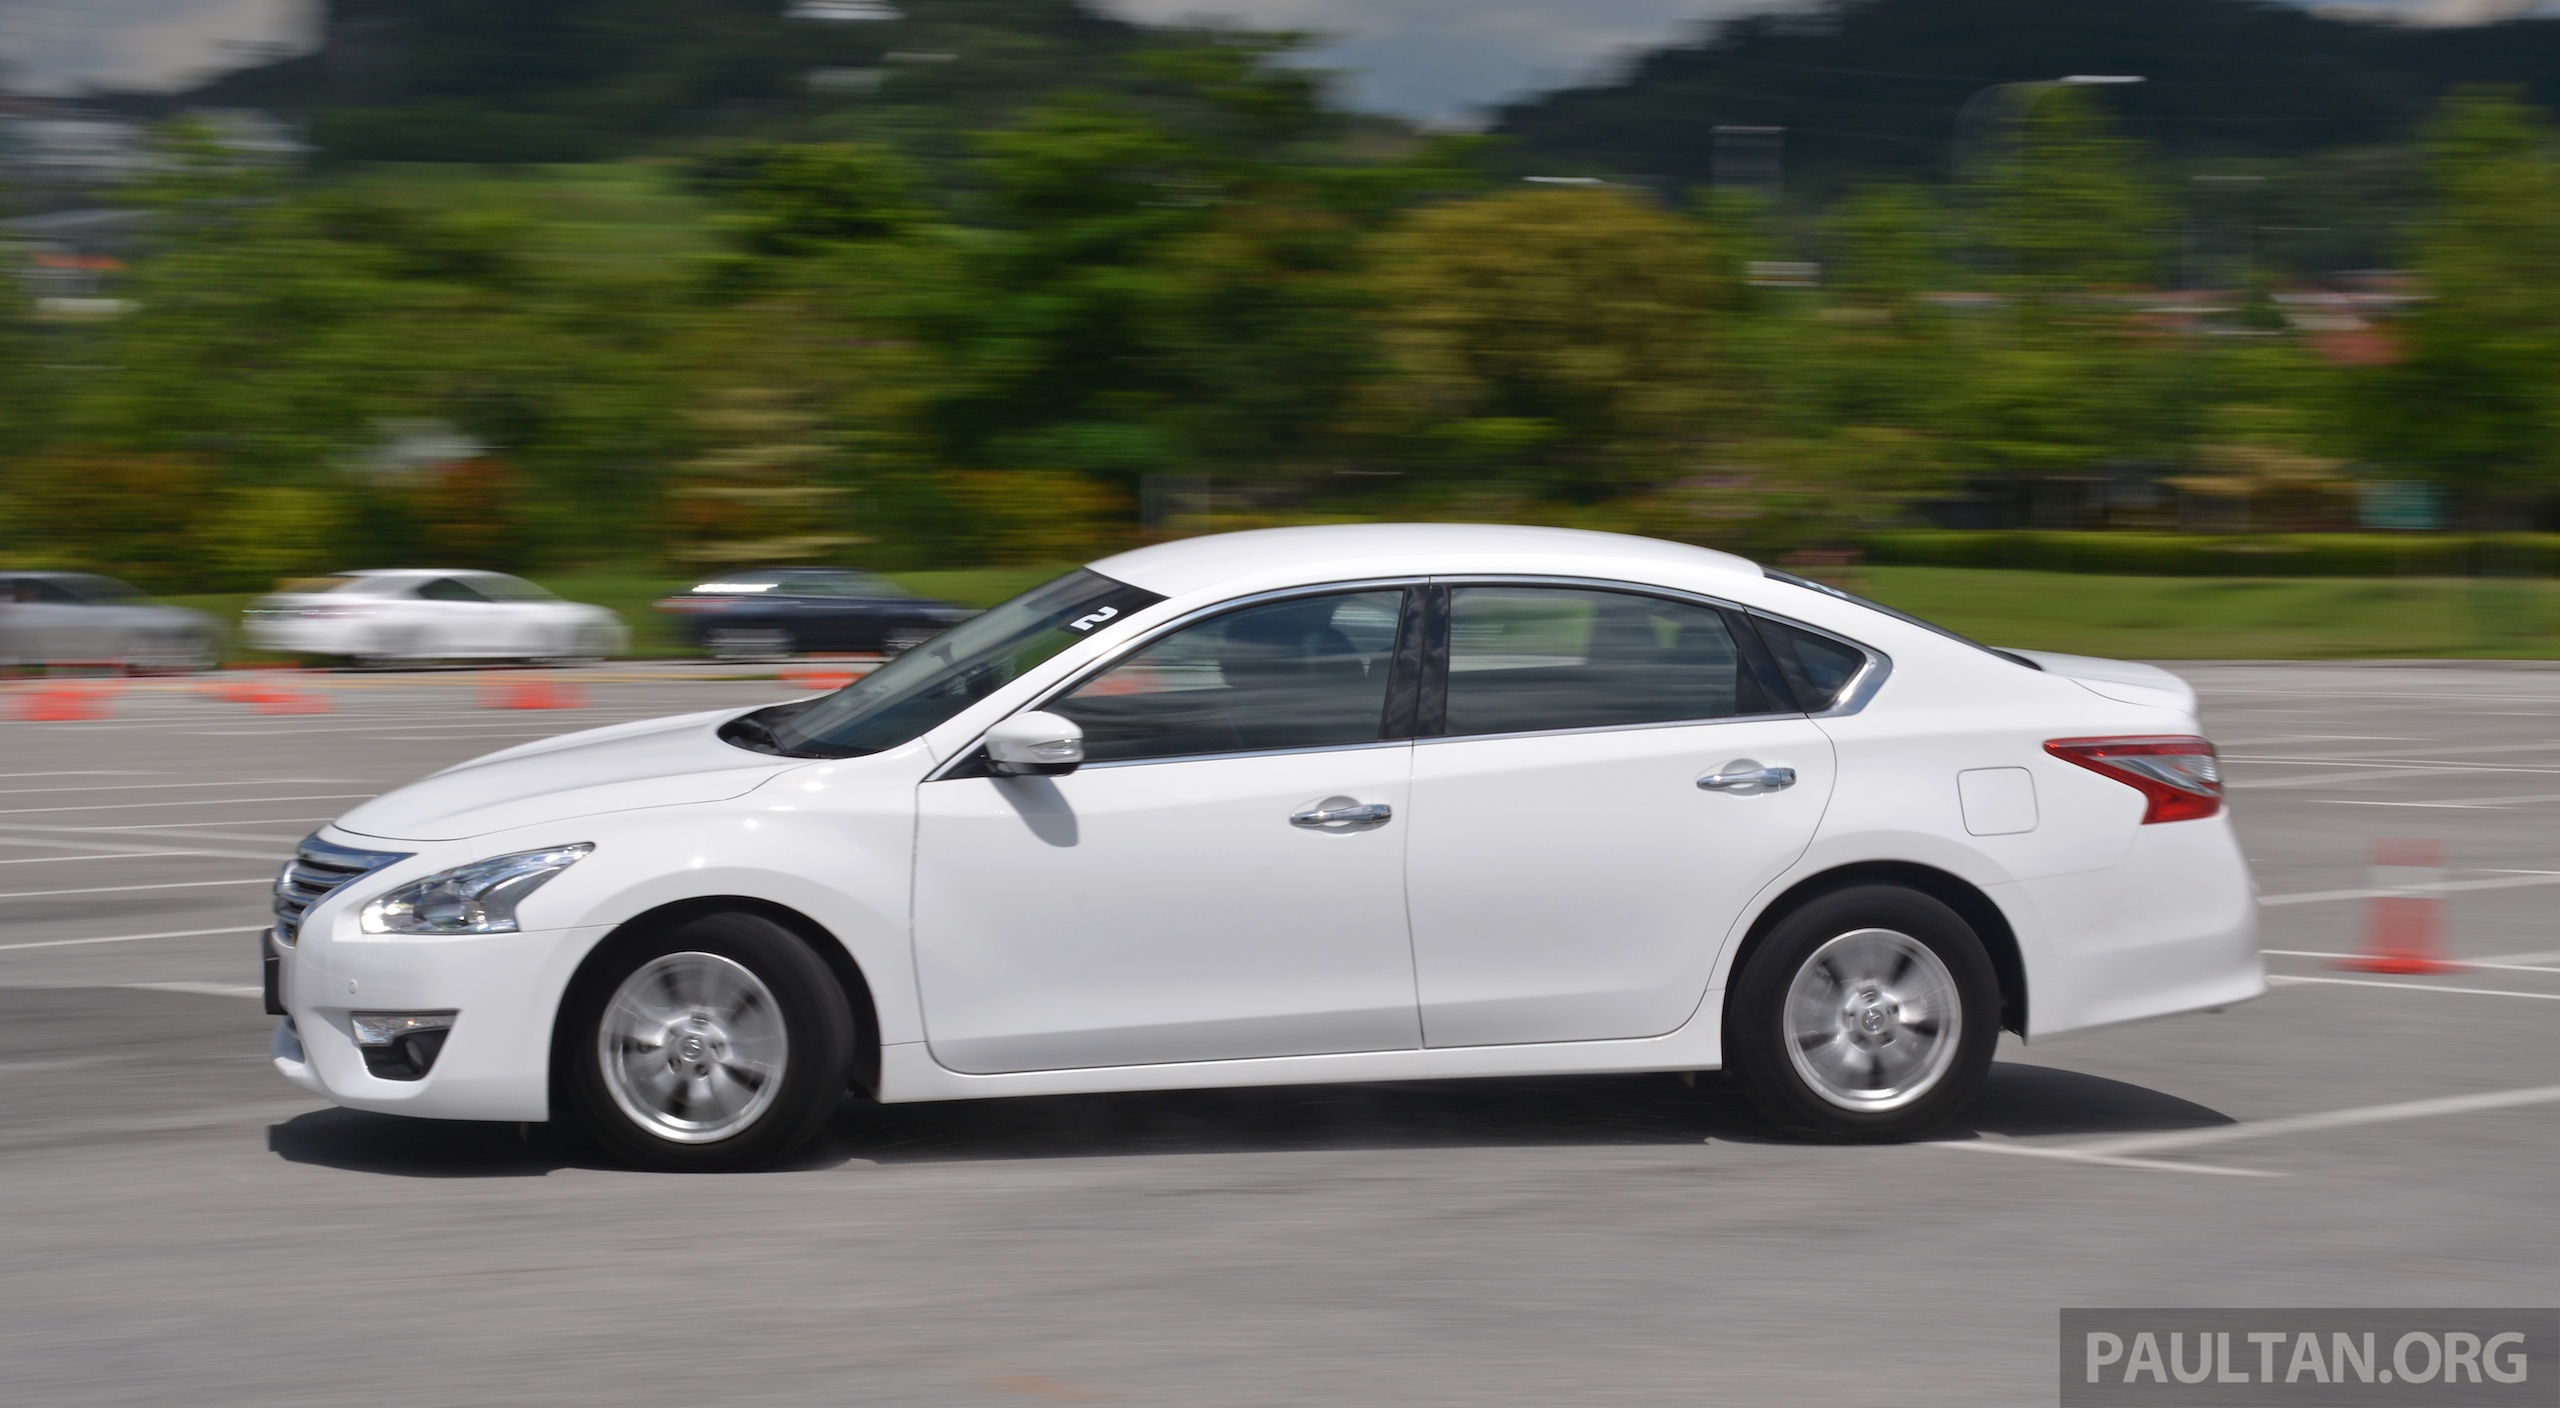 Driven 2014 Nissan Teana Ups The D Segment Ante Image 247945